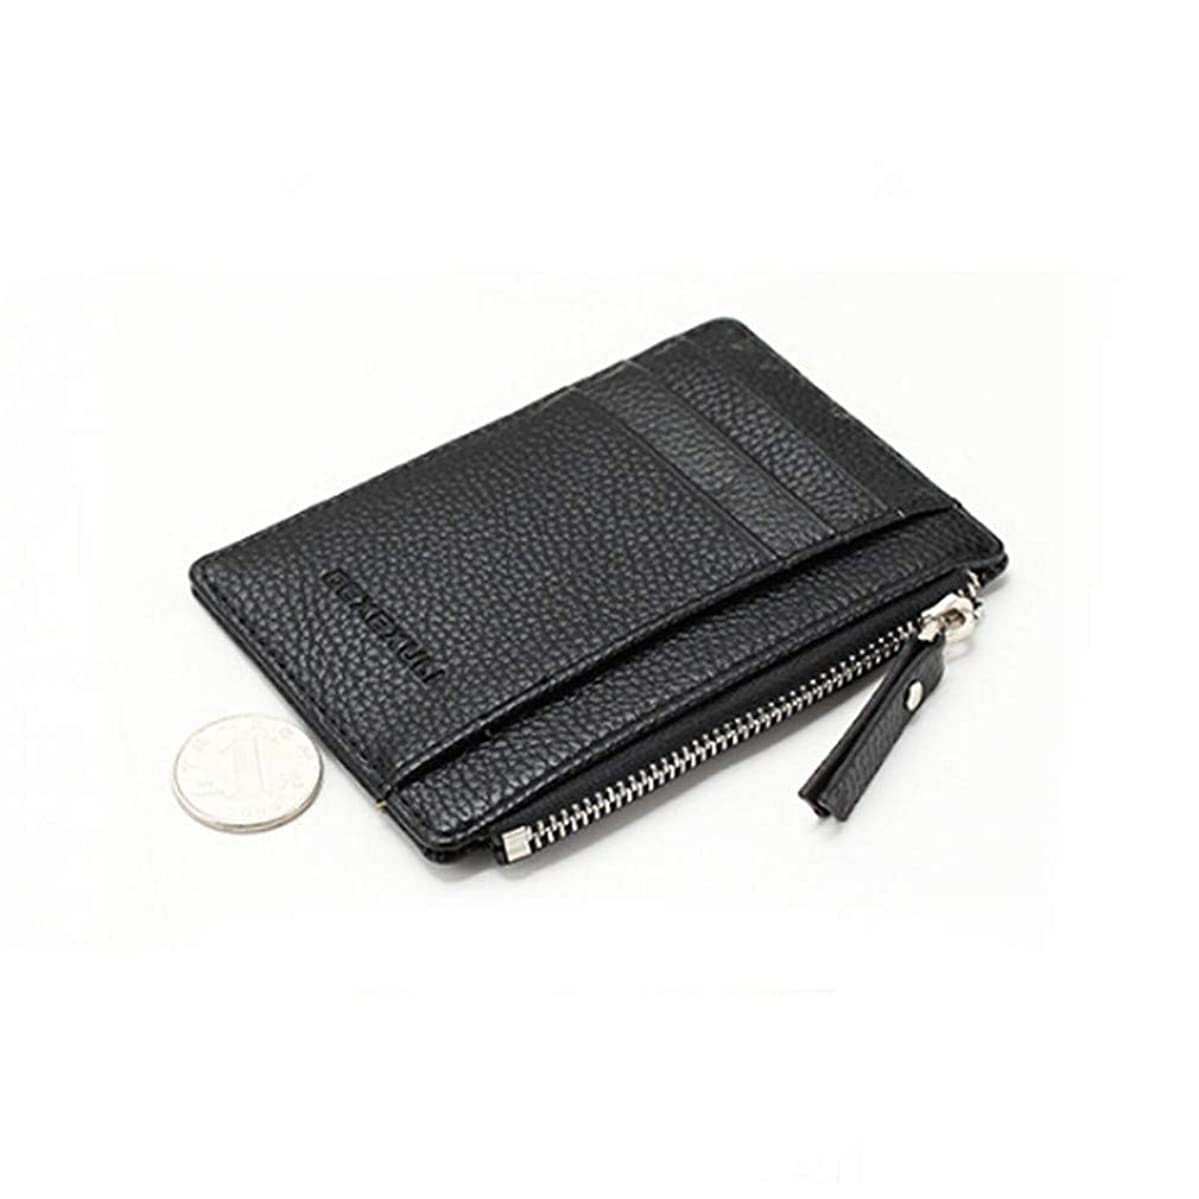 HENGSONG Wallet Mini PU Leather Card Holders Purse Men Women Zipper Coin Pocket Ultra Thin Multi-Function Storage Bag,Black